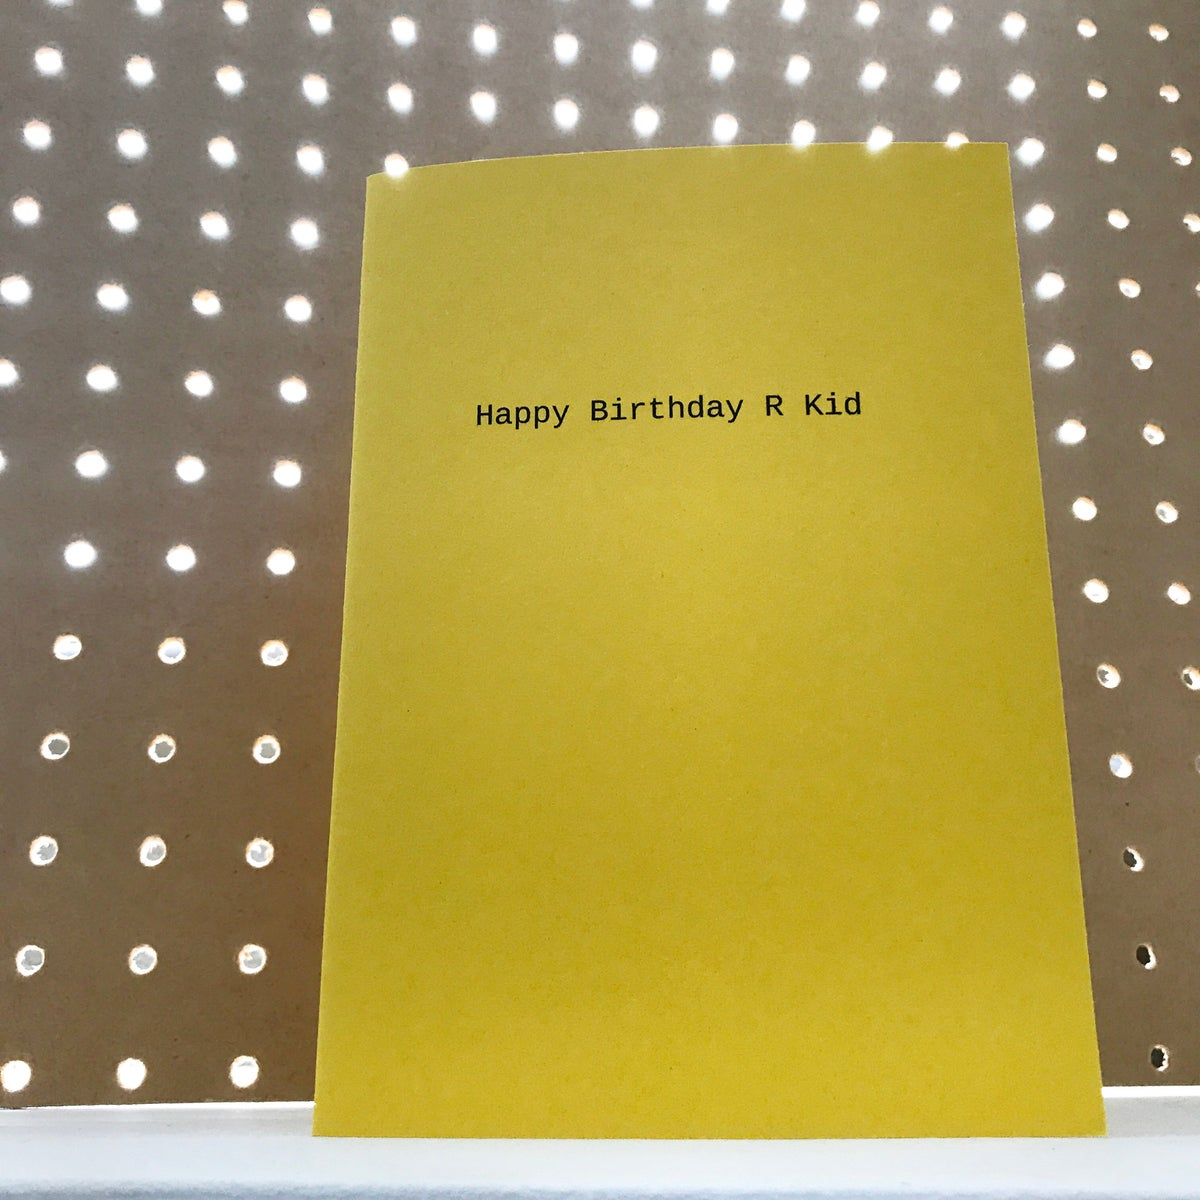 Image of Happy Birthday R Kid card